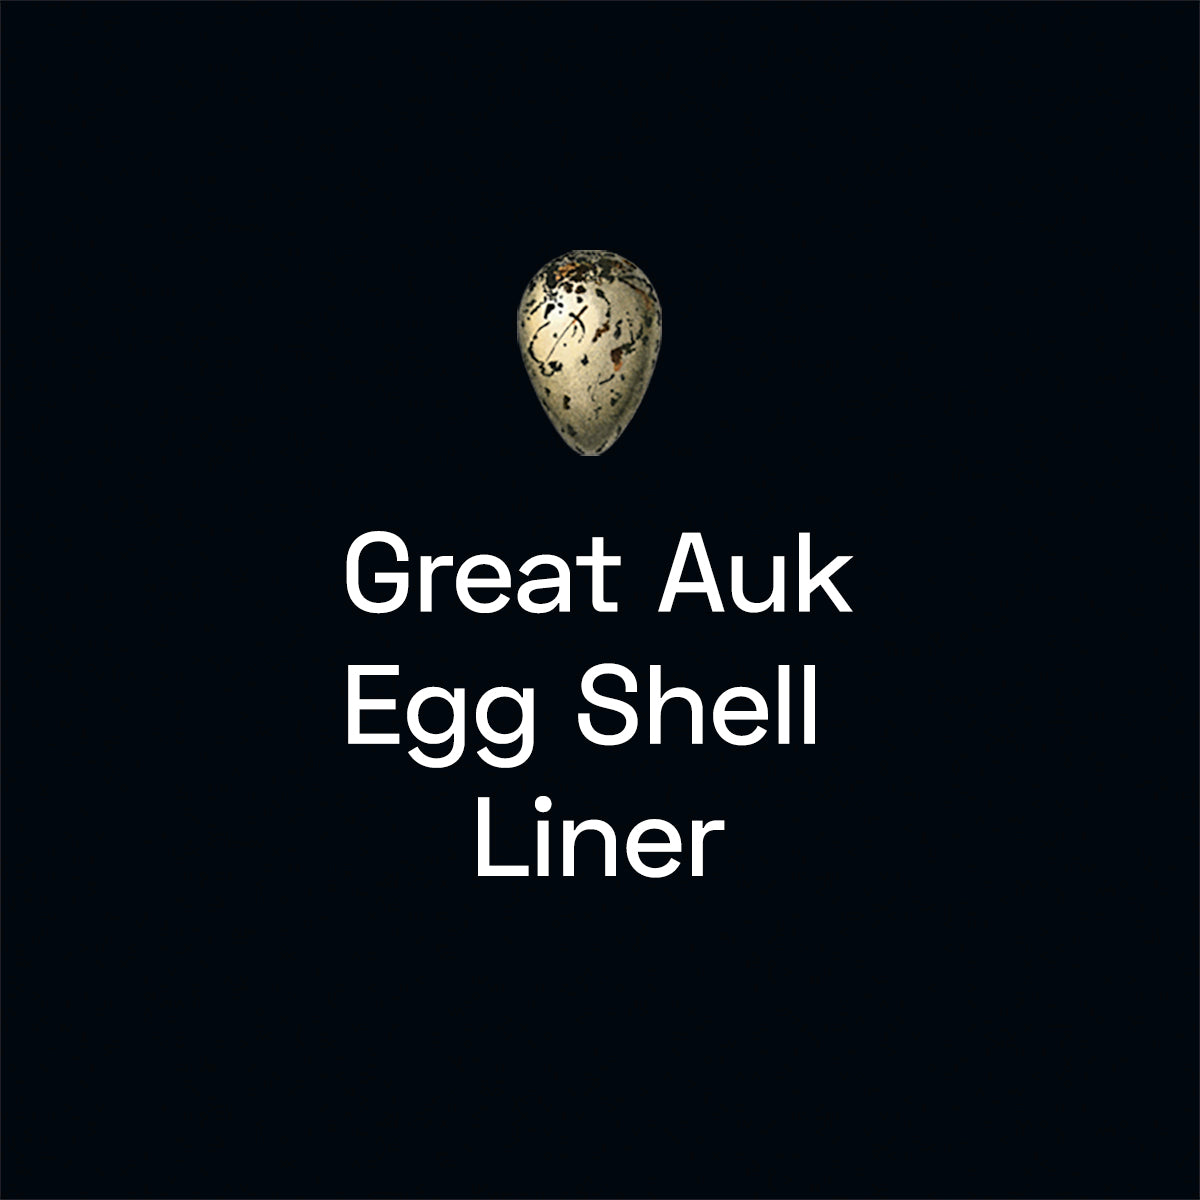 Great Auk Egg Shell Liner